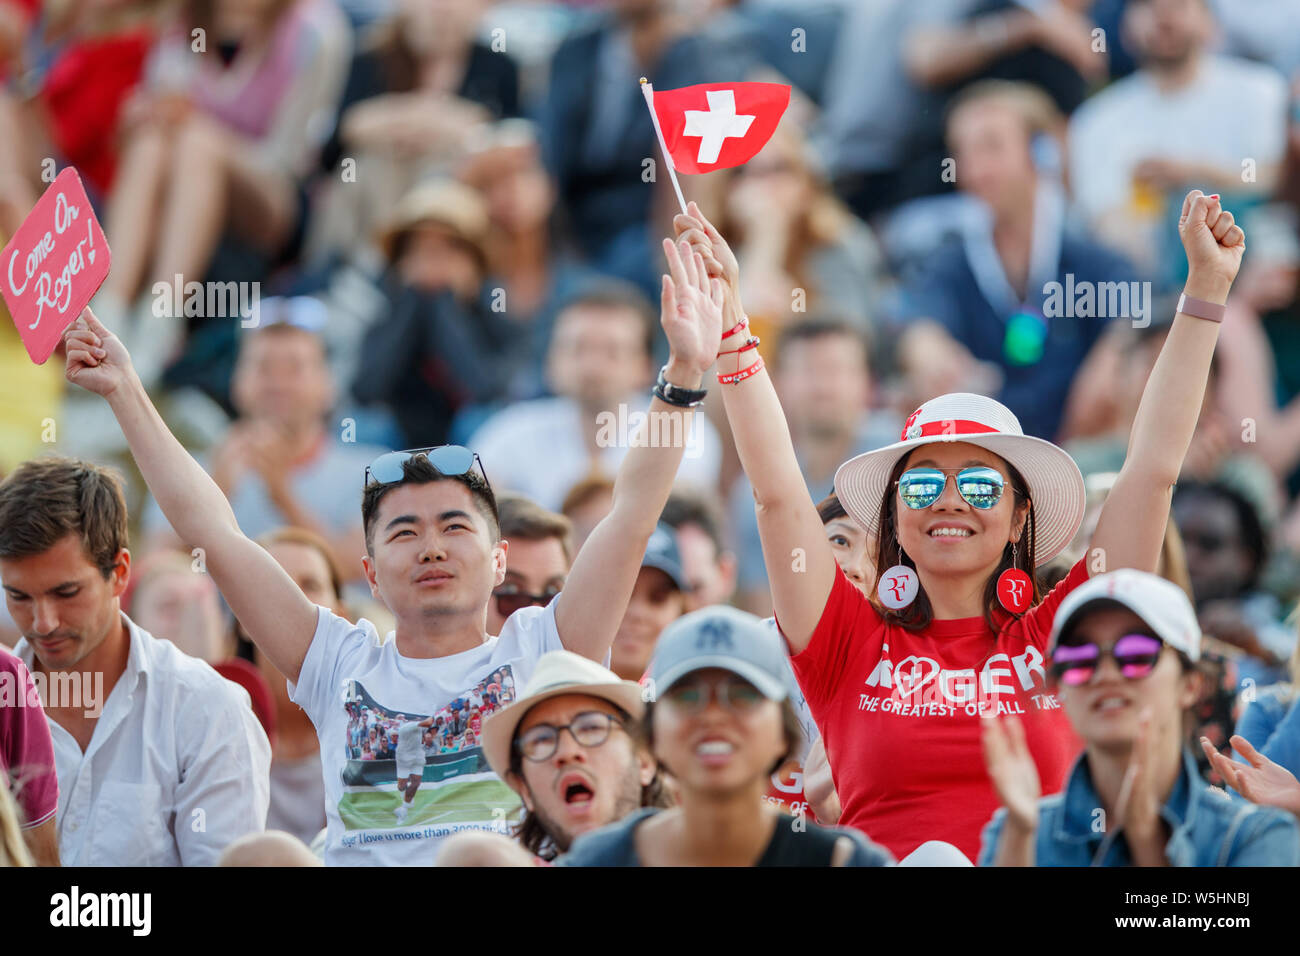 Roger Federer fans and spectators on Henman Hill Murray Mound or Aorangi Hill during The Championships at Wimbledon 2019. Stock Photo